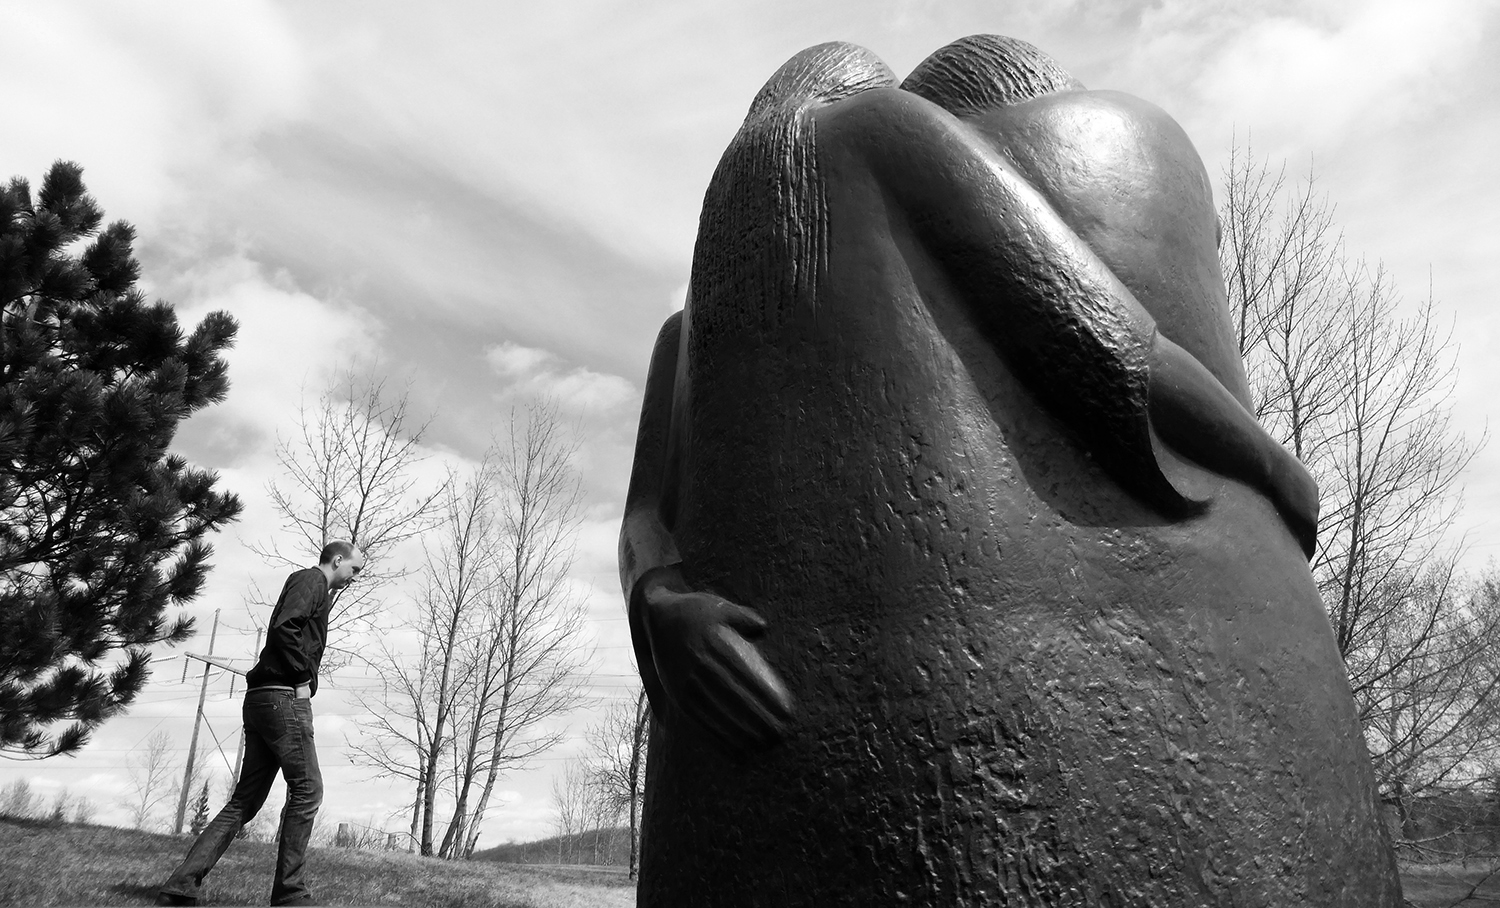 Touring Edmonton's Public Art Collection